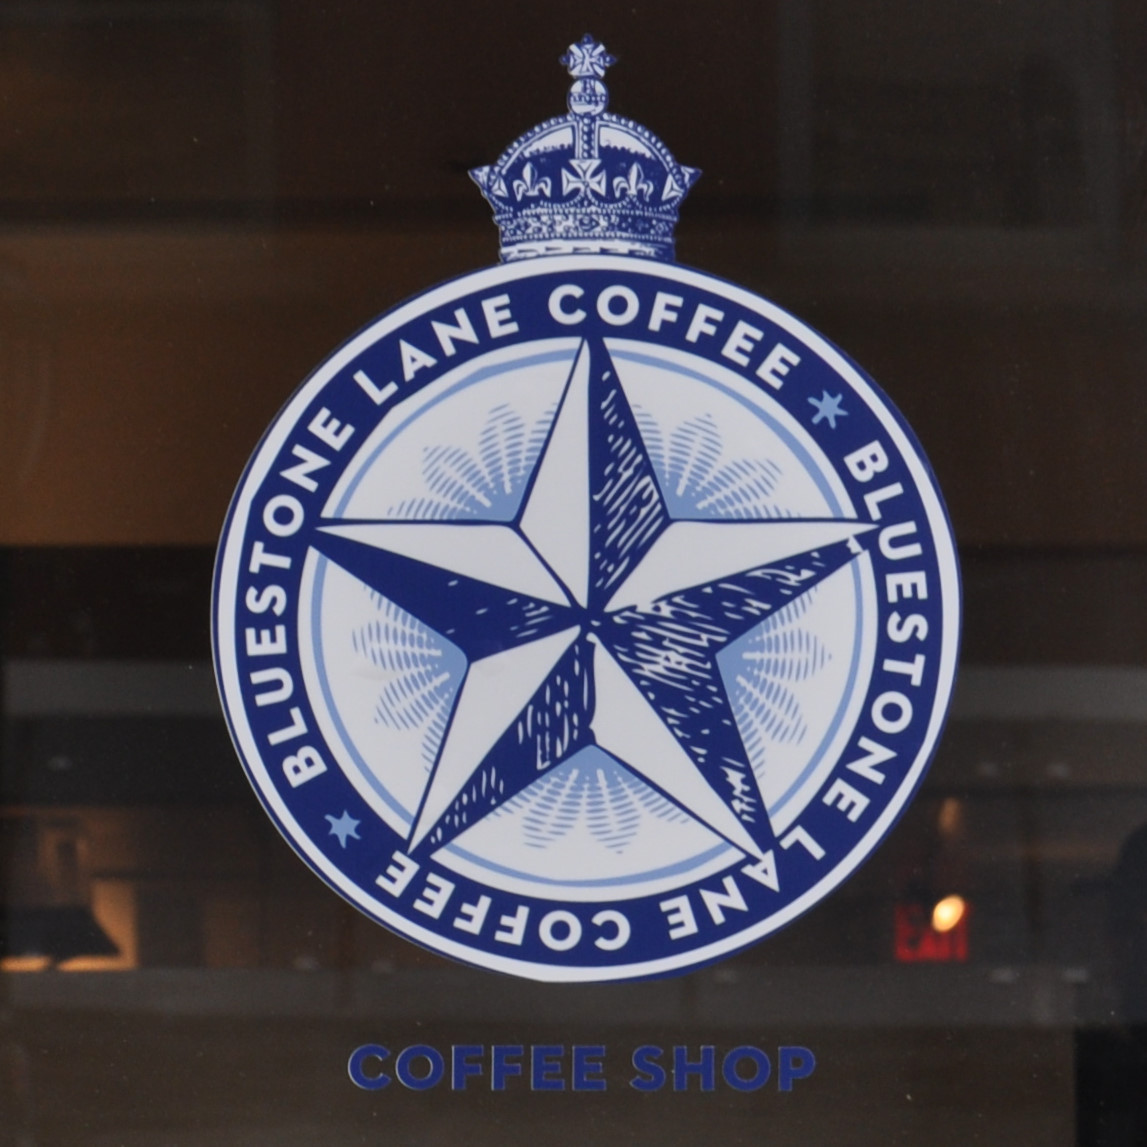 The Bluestone Lane logo (a five-pointed star in a blue circle) from the window of the cafe on Locust Street in Philadelphia.